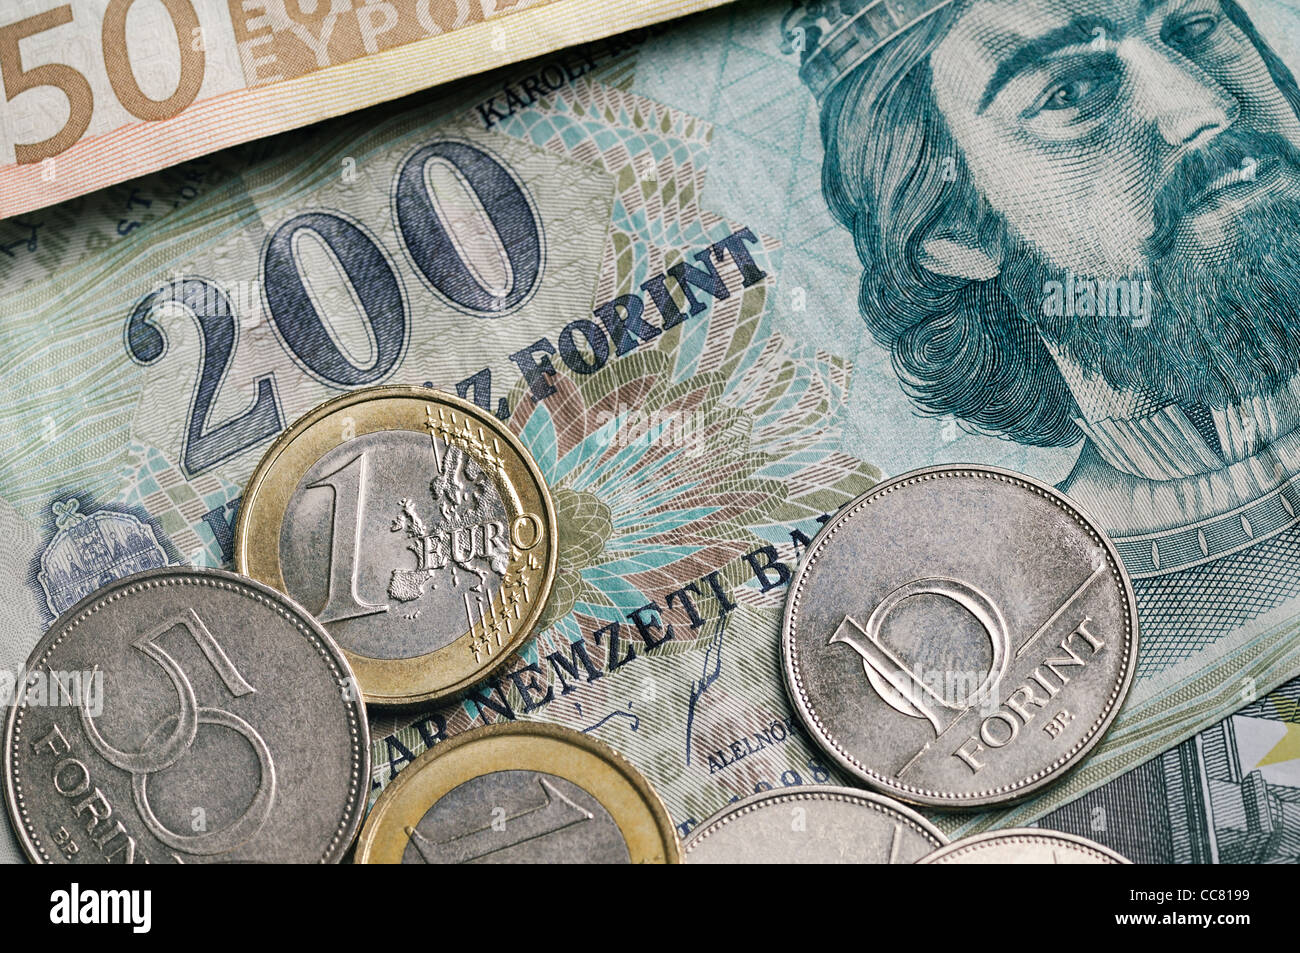 Forint and Euro Currencies of Hungary and the EU. - Stock Image